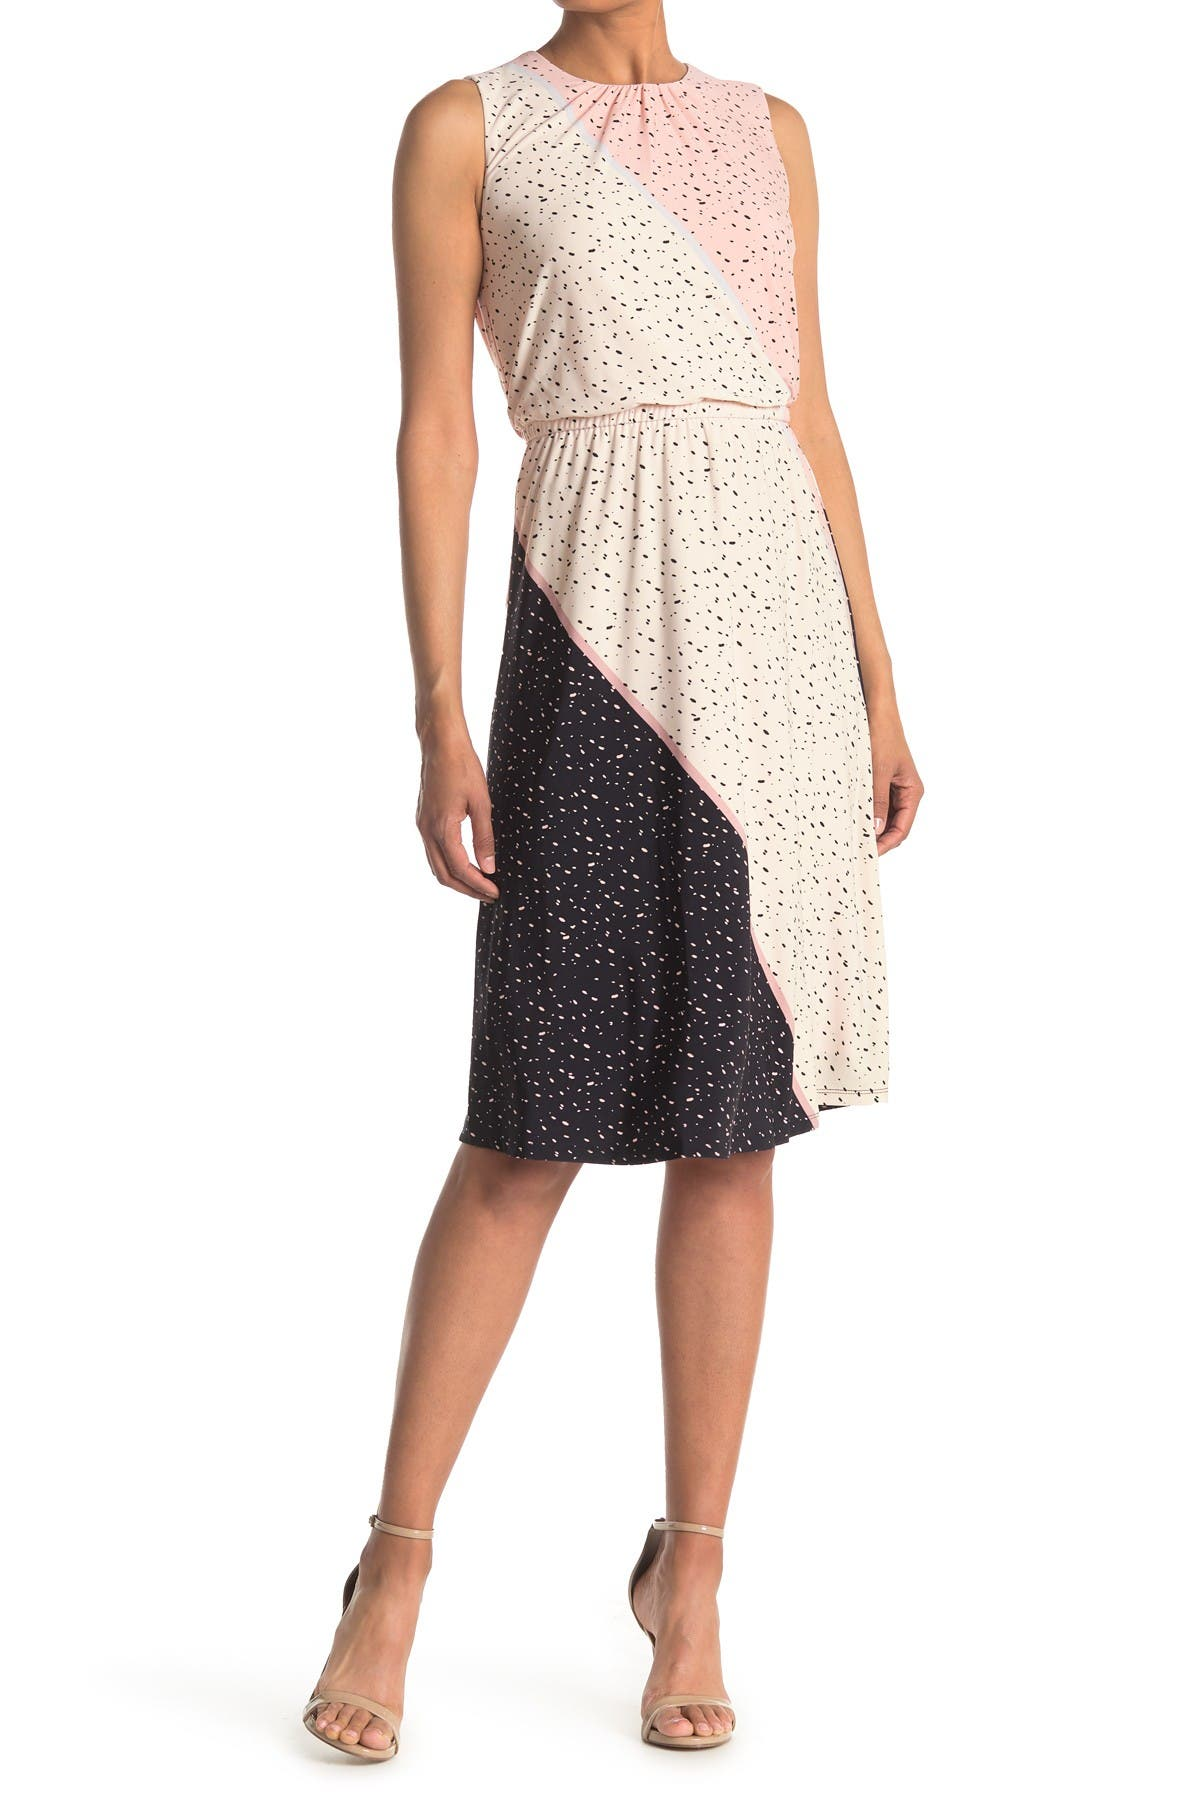 Image of London Times Speckled Texture Speckle Printed Jersey Dress